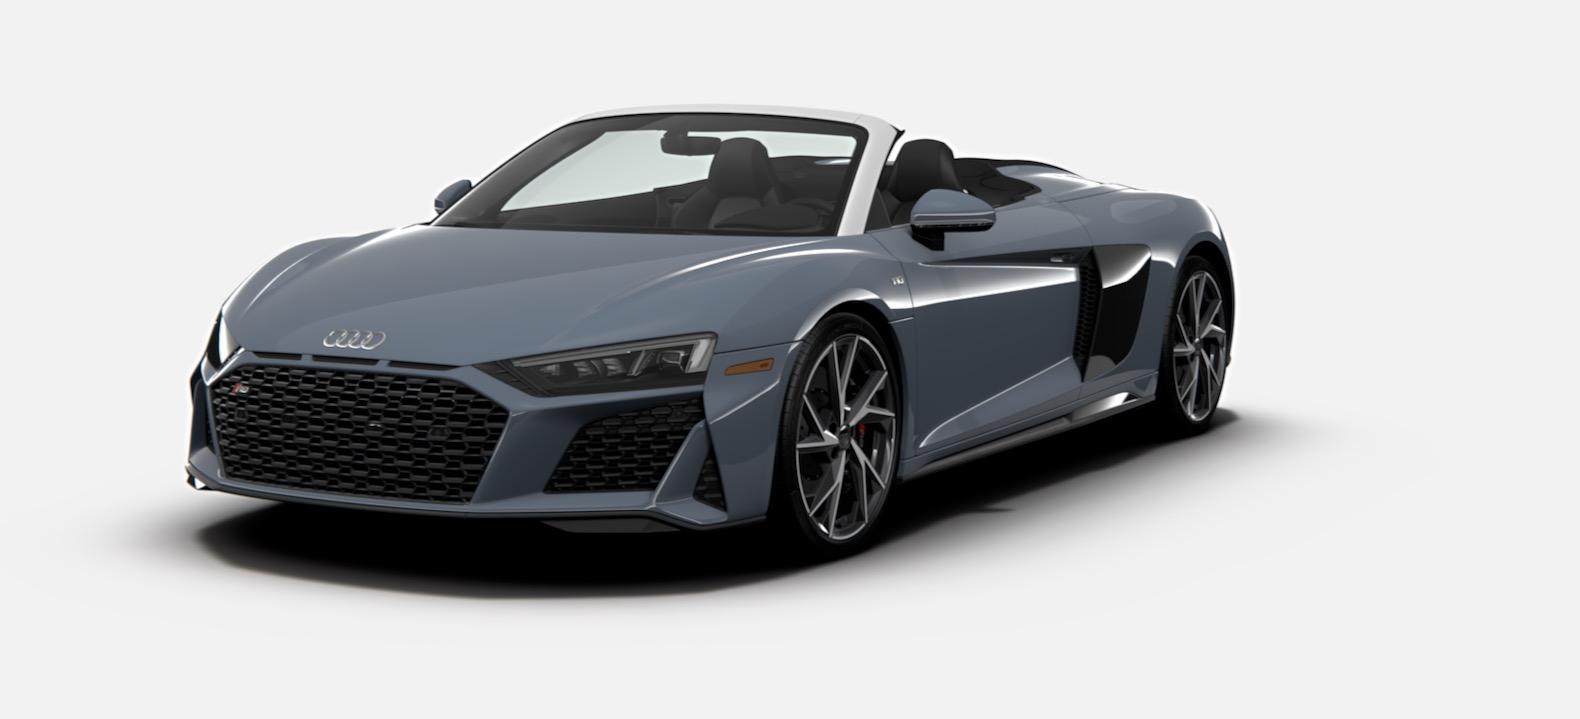 2021 audi r8 rwd coupe and spyder are here to stay | the